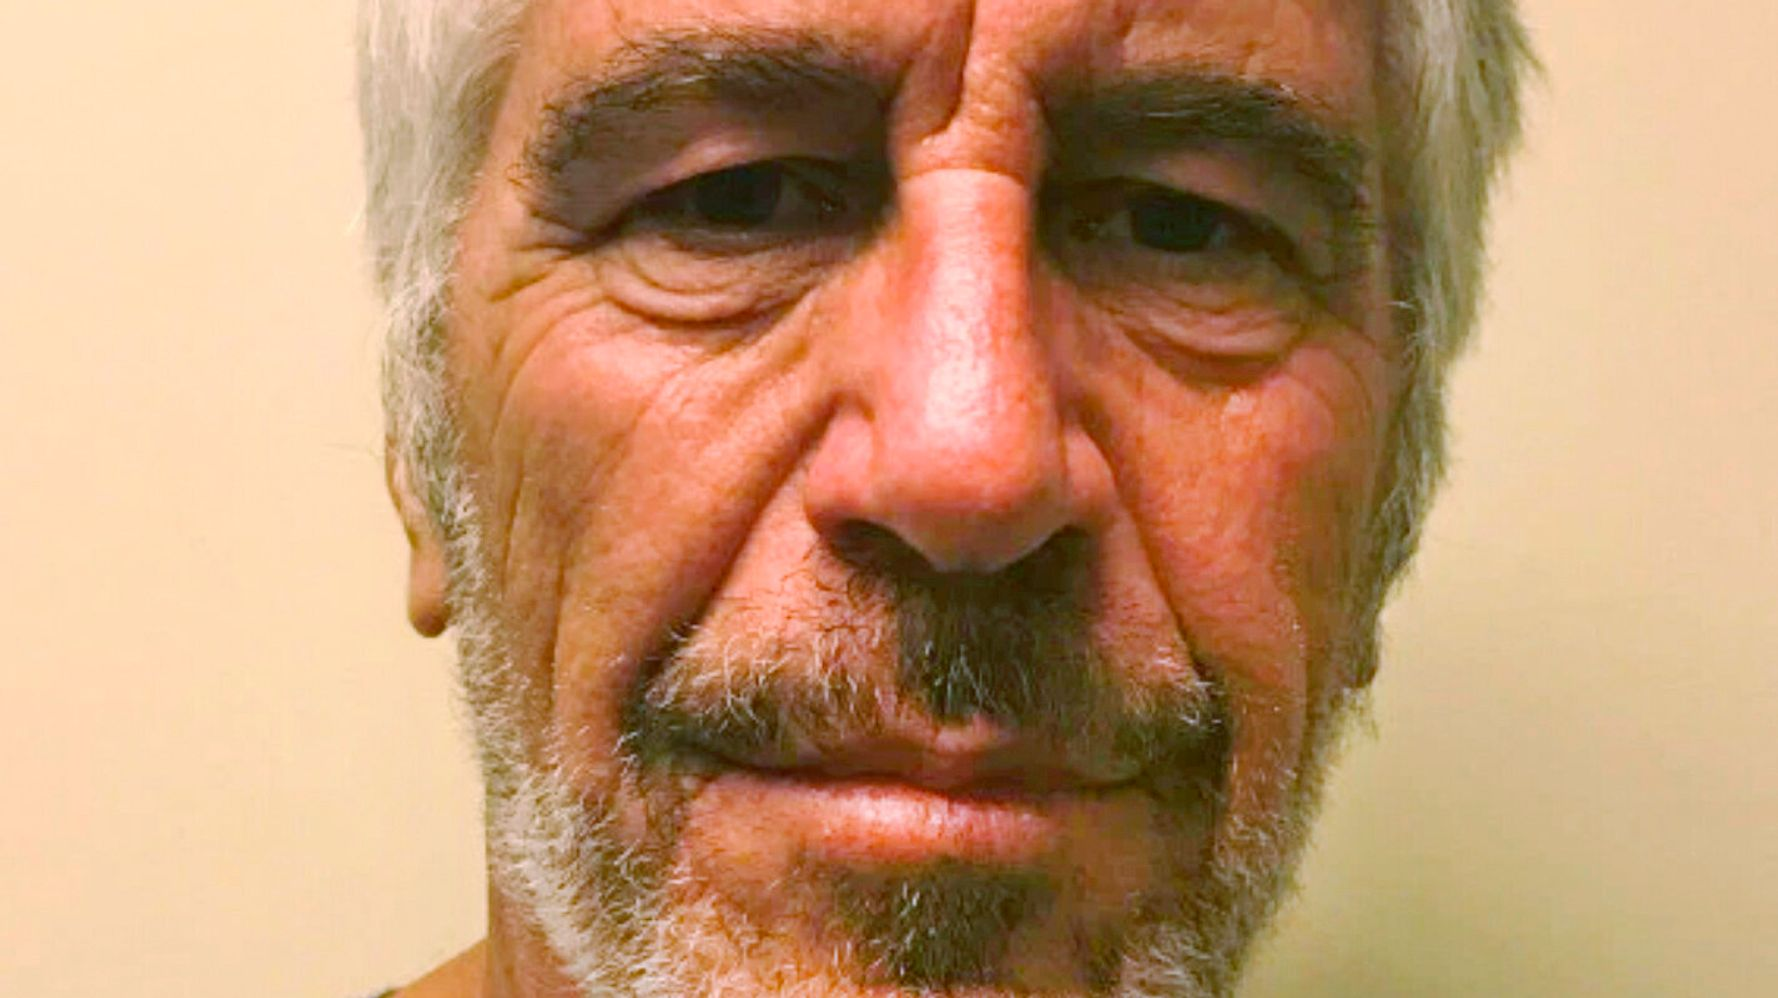 Westlake Legal Group 5d530ae52200003100f53c22 2 Guards Assigned To Watch Jeffrey Epstein Placed On Leave, DOJ Says